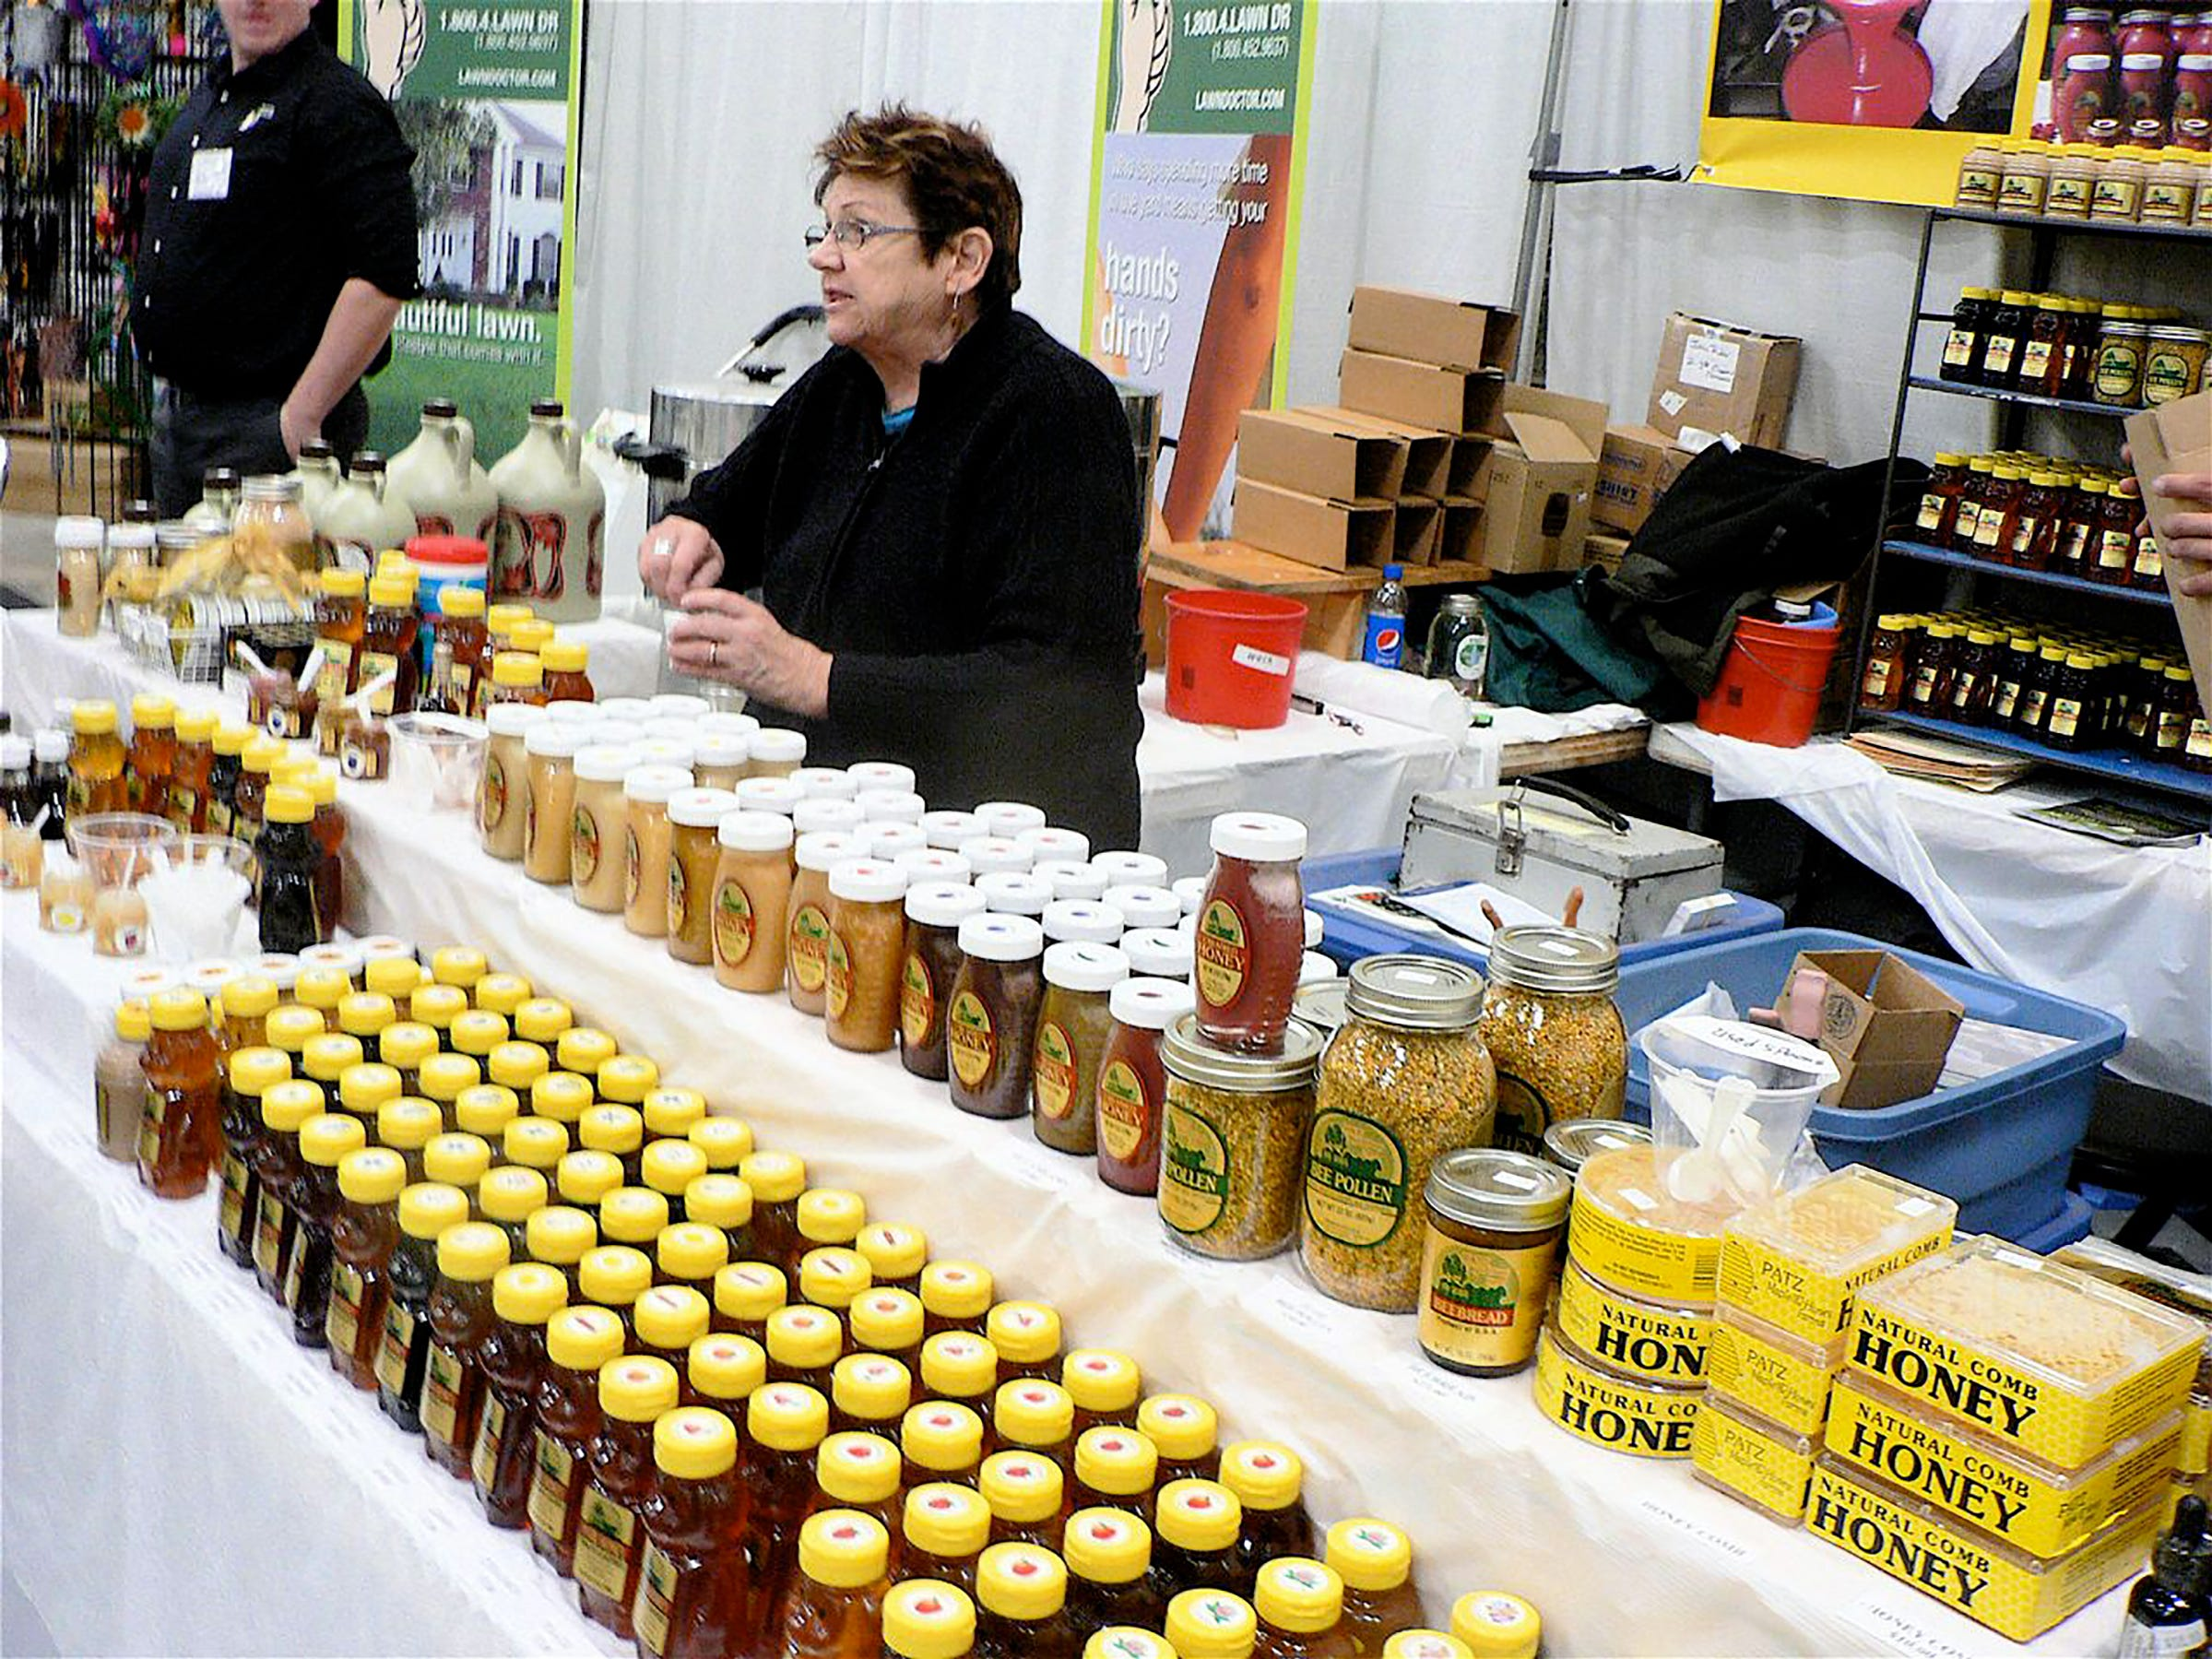 Maple and honey products of all kinds at the Patz Maple and Honey Farms display.